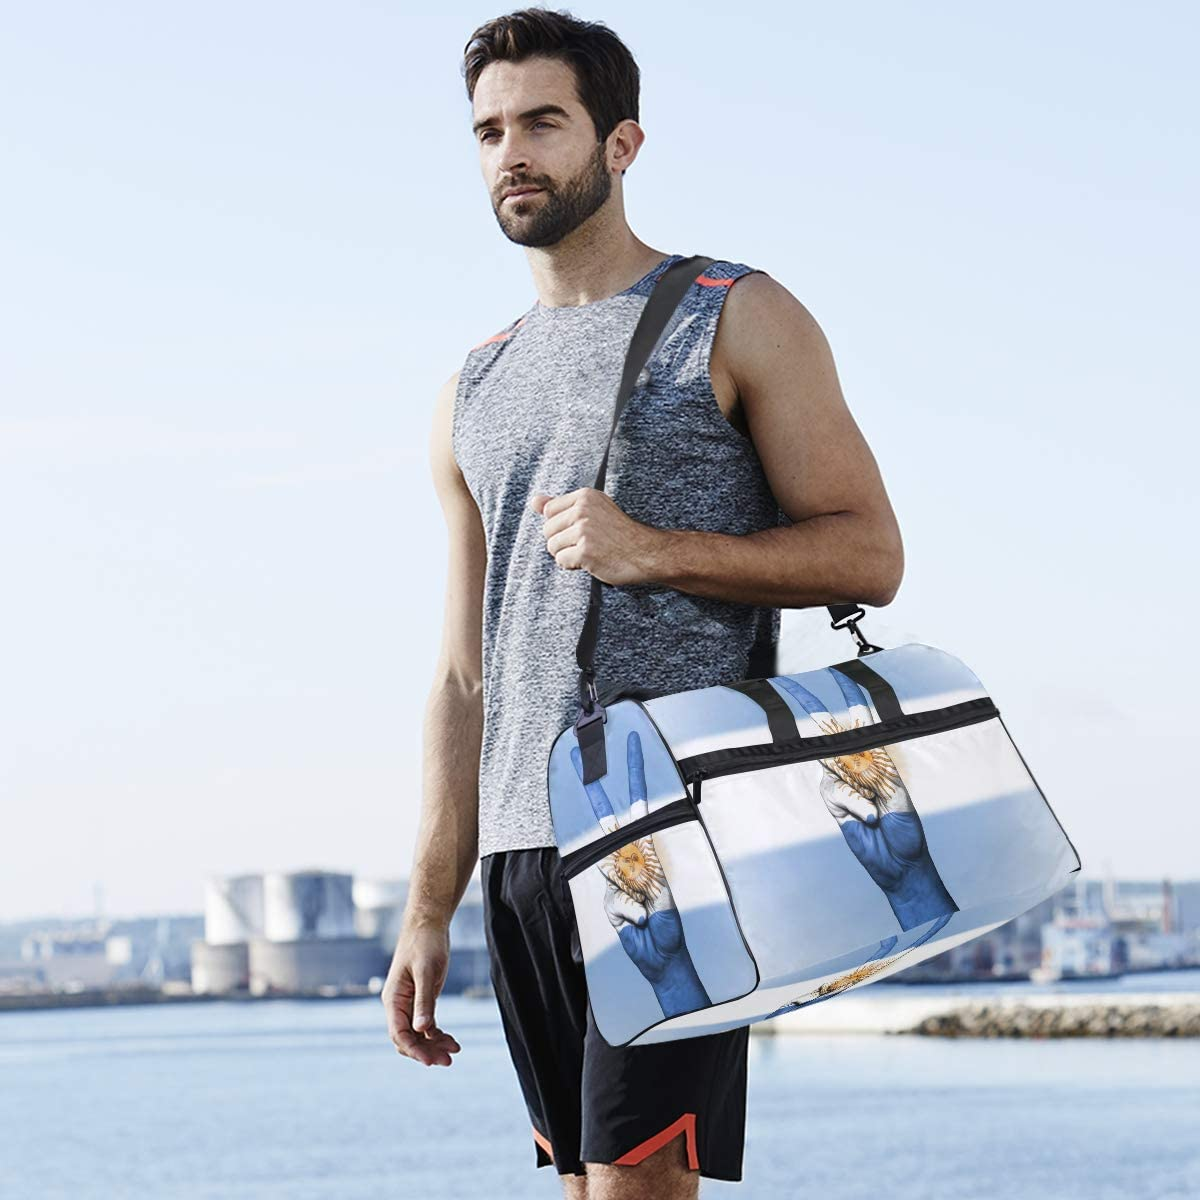 MUOOUM Argentina Flag Peace Hand Large Duffle Bags Sports Gym Bag with Shoes Compartment for Men and Women